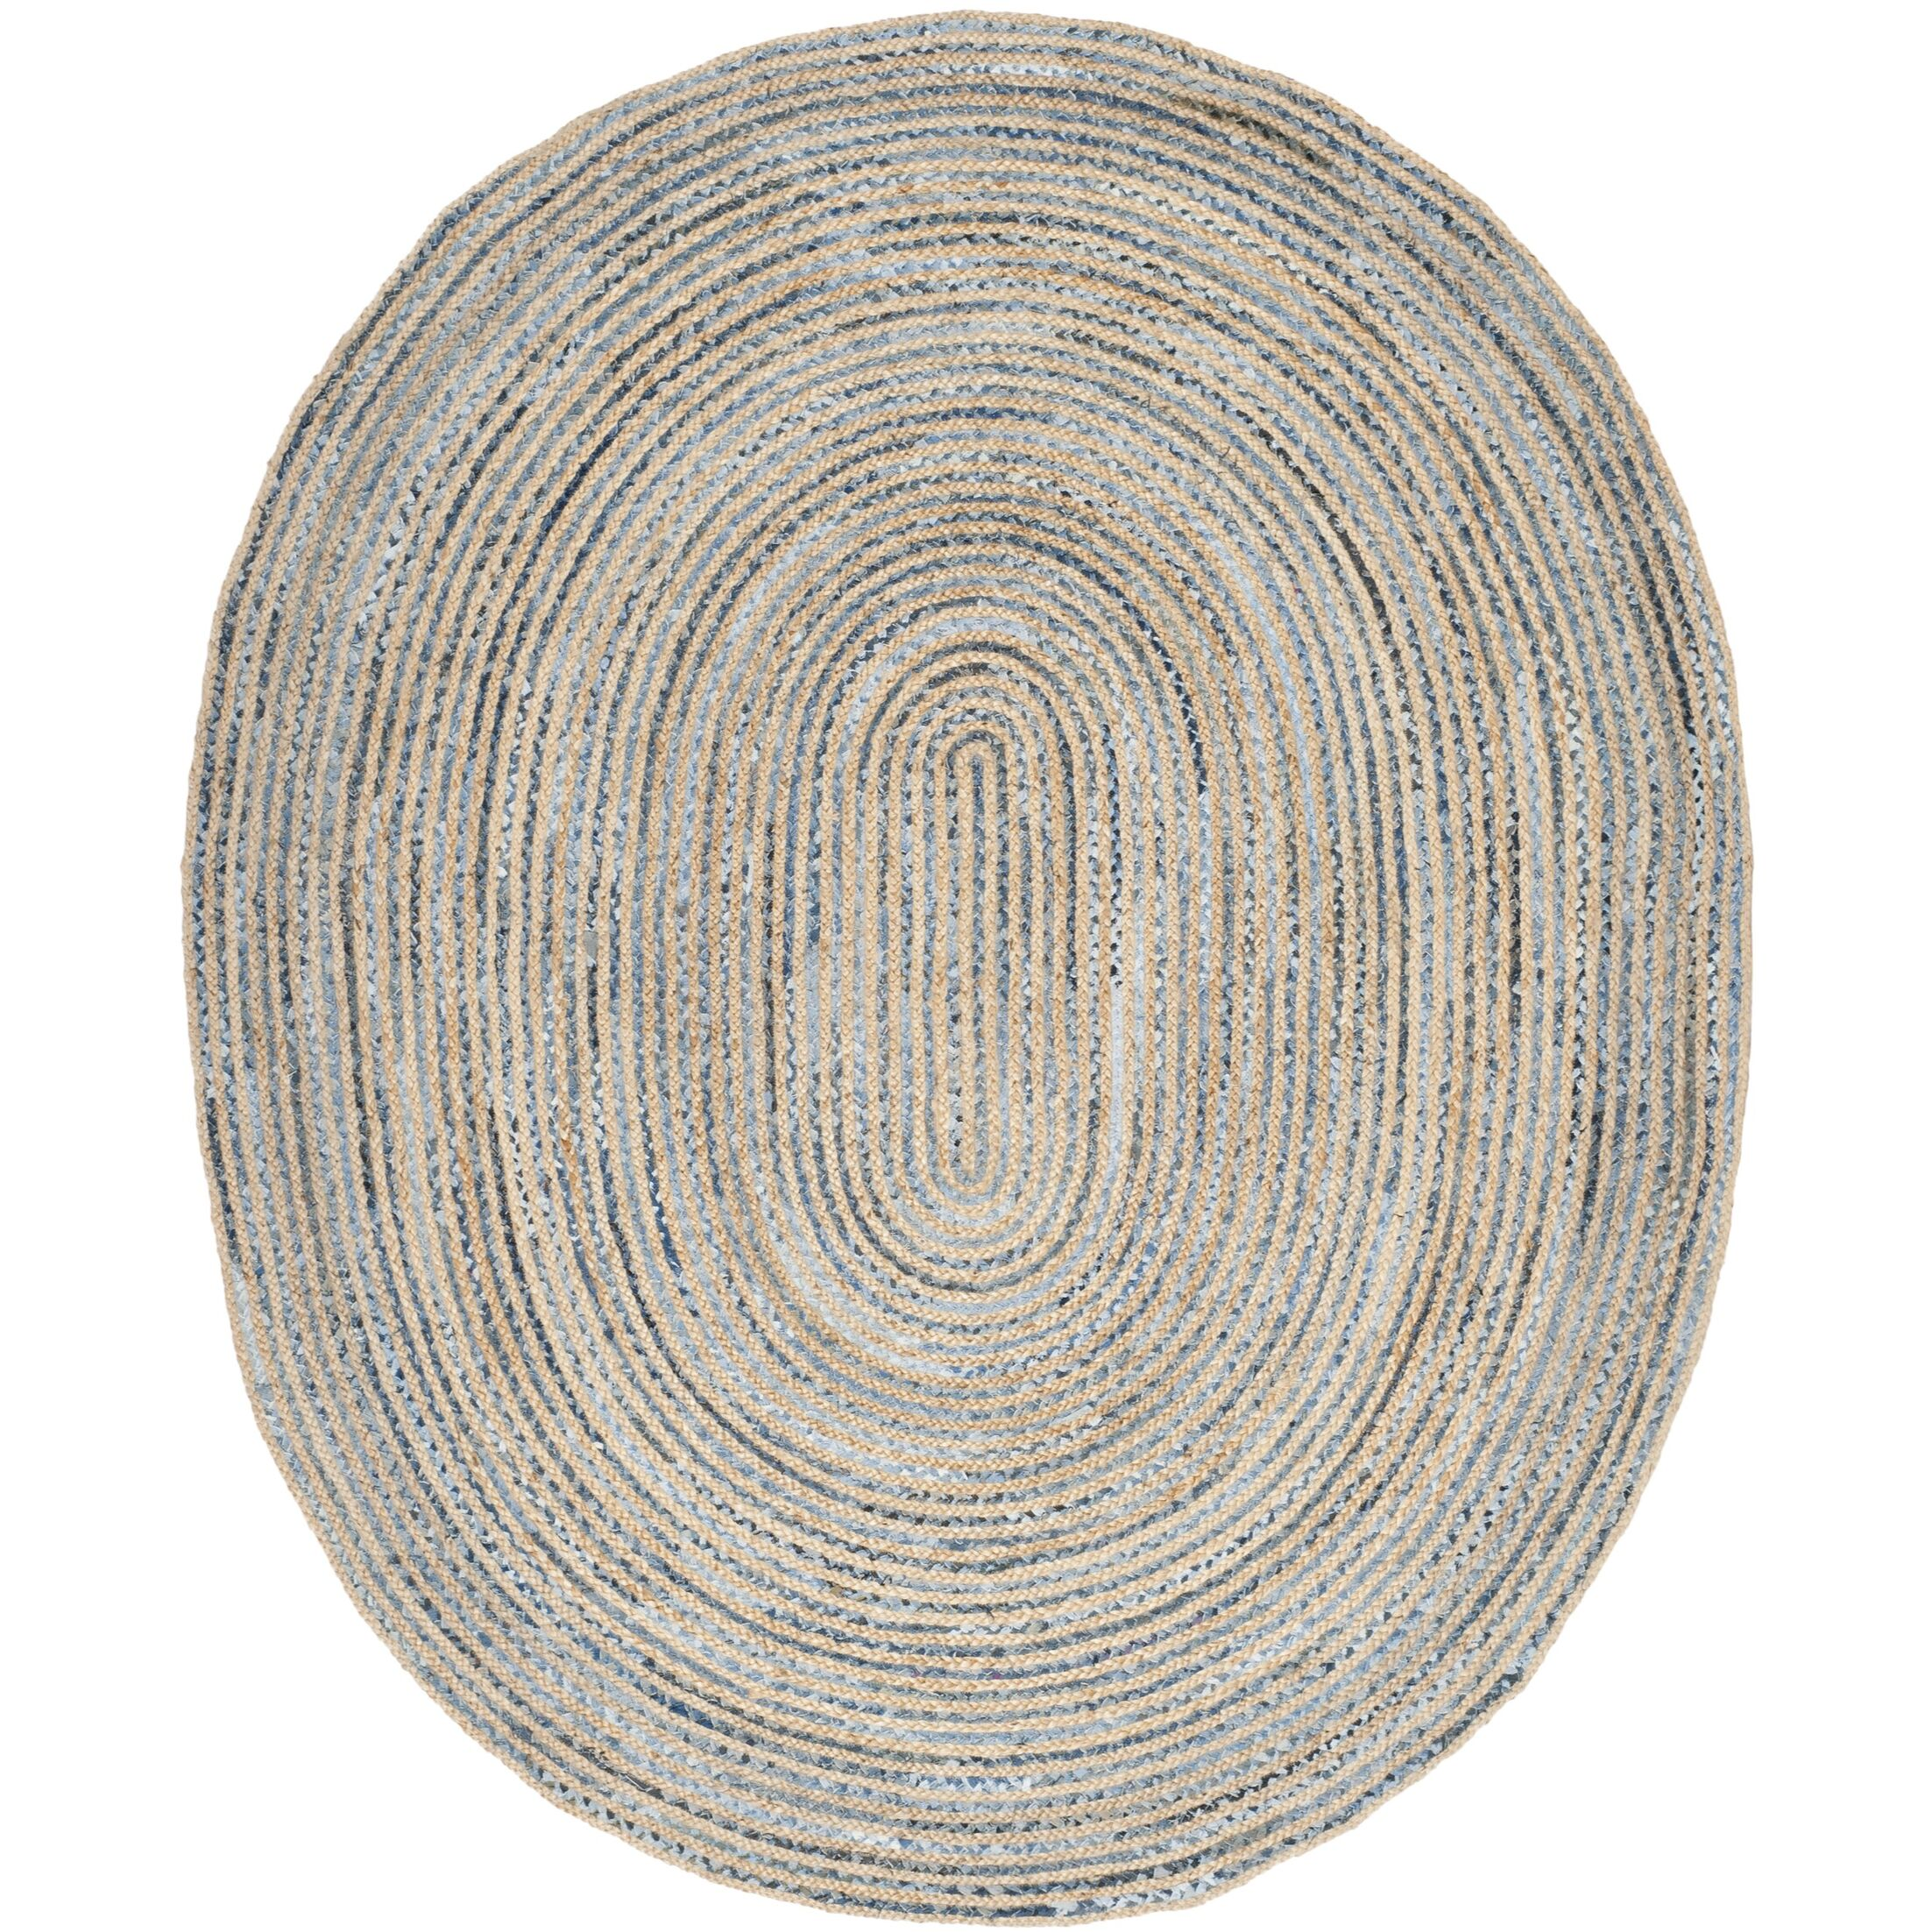 Brynne Hand-Woven Natural/Blue Area Rug Rug Size: Oval 9' x 12'